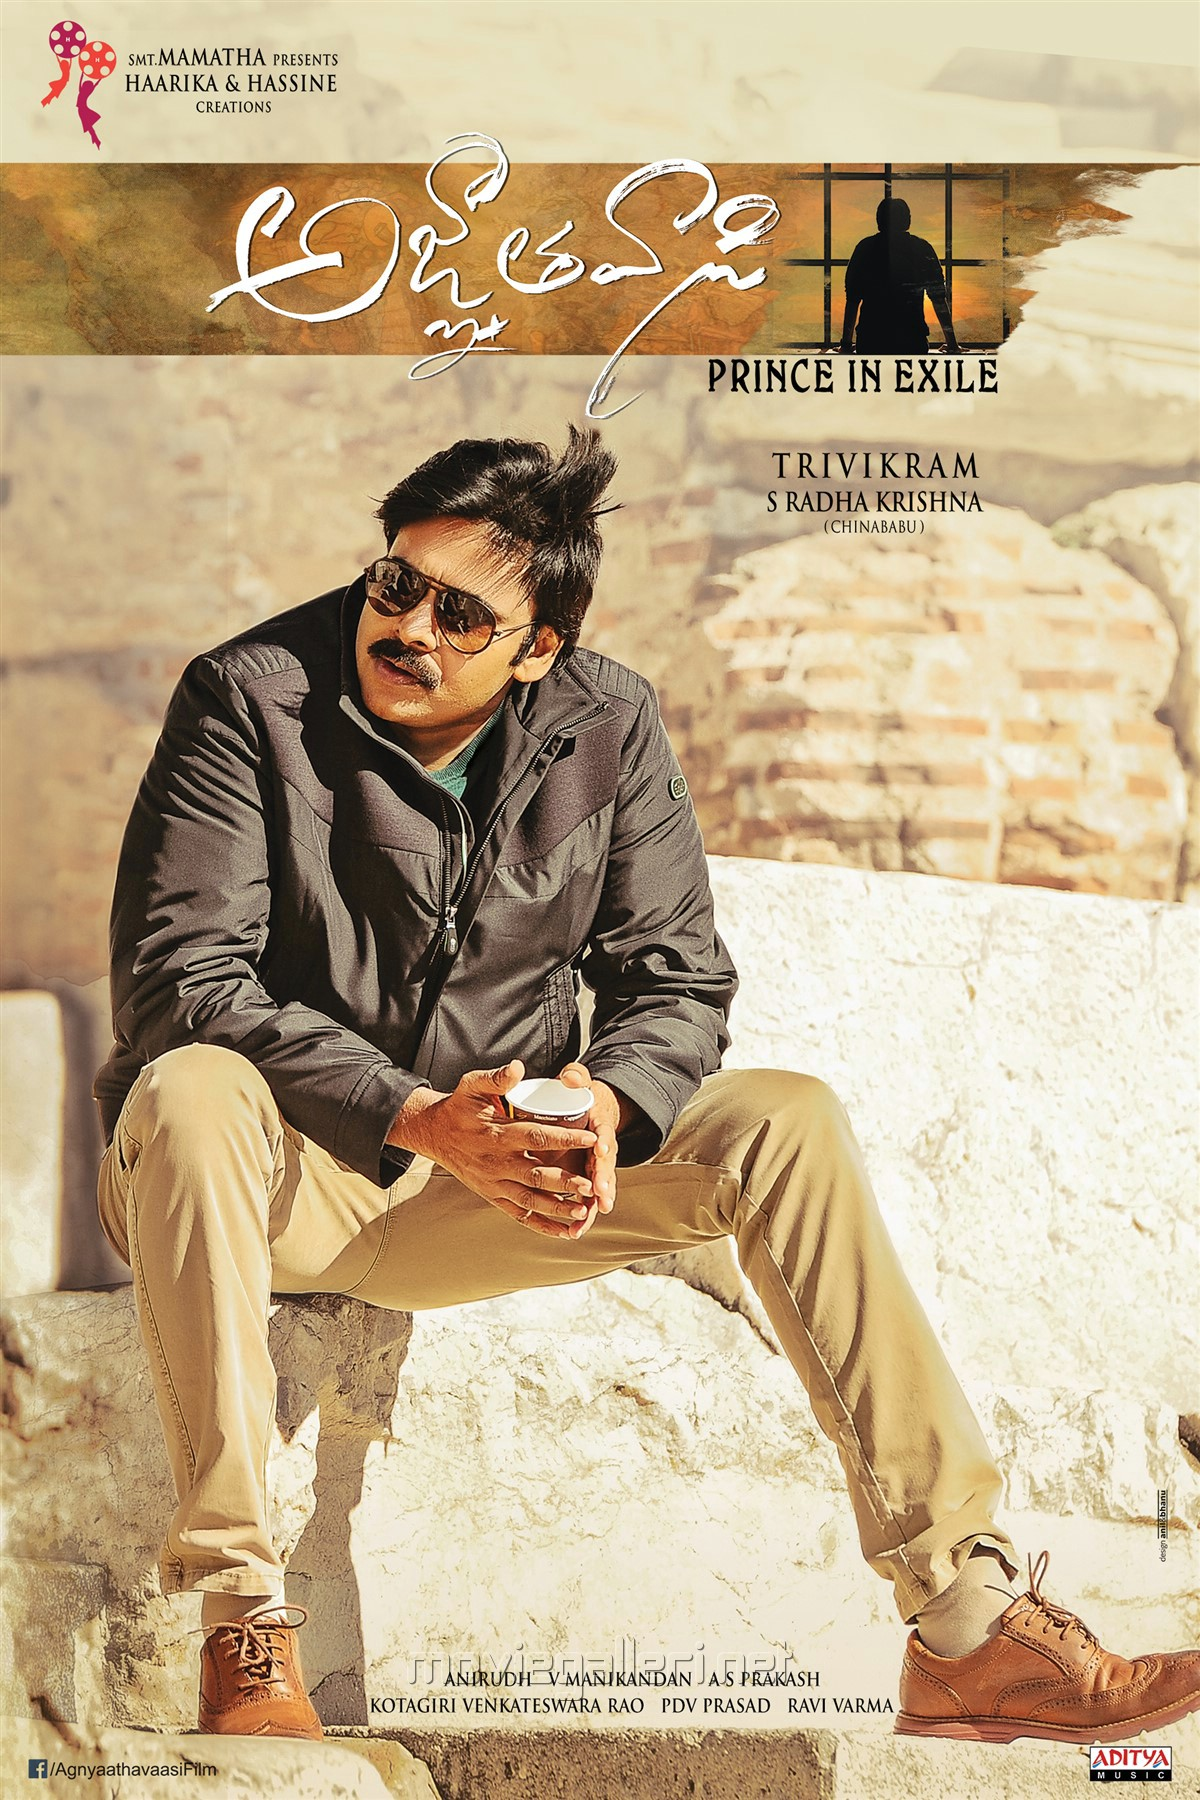 pawan kalyan agnyaathavaasi movie new posters hd | new movie posters